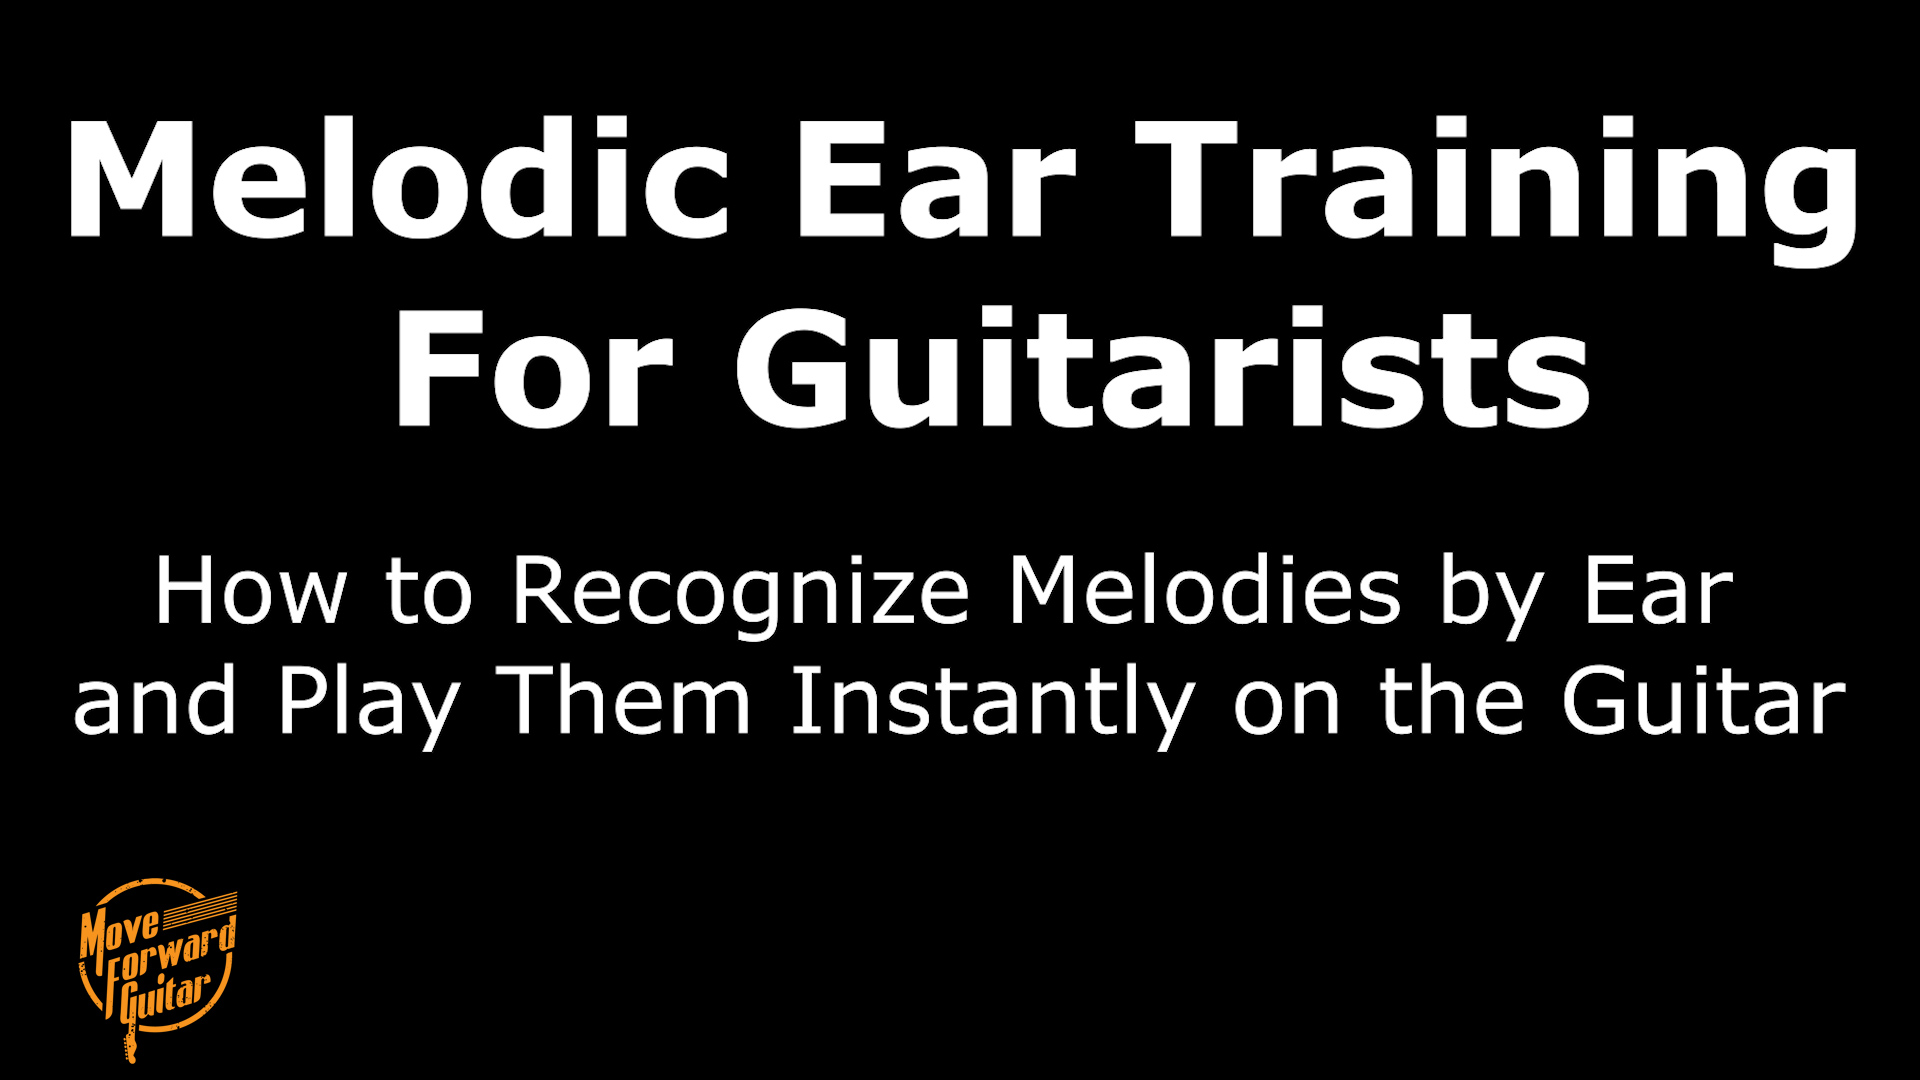 How to recognize melodies by ear and play them instantly on the guitar